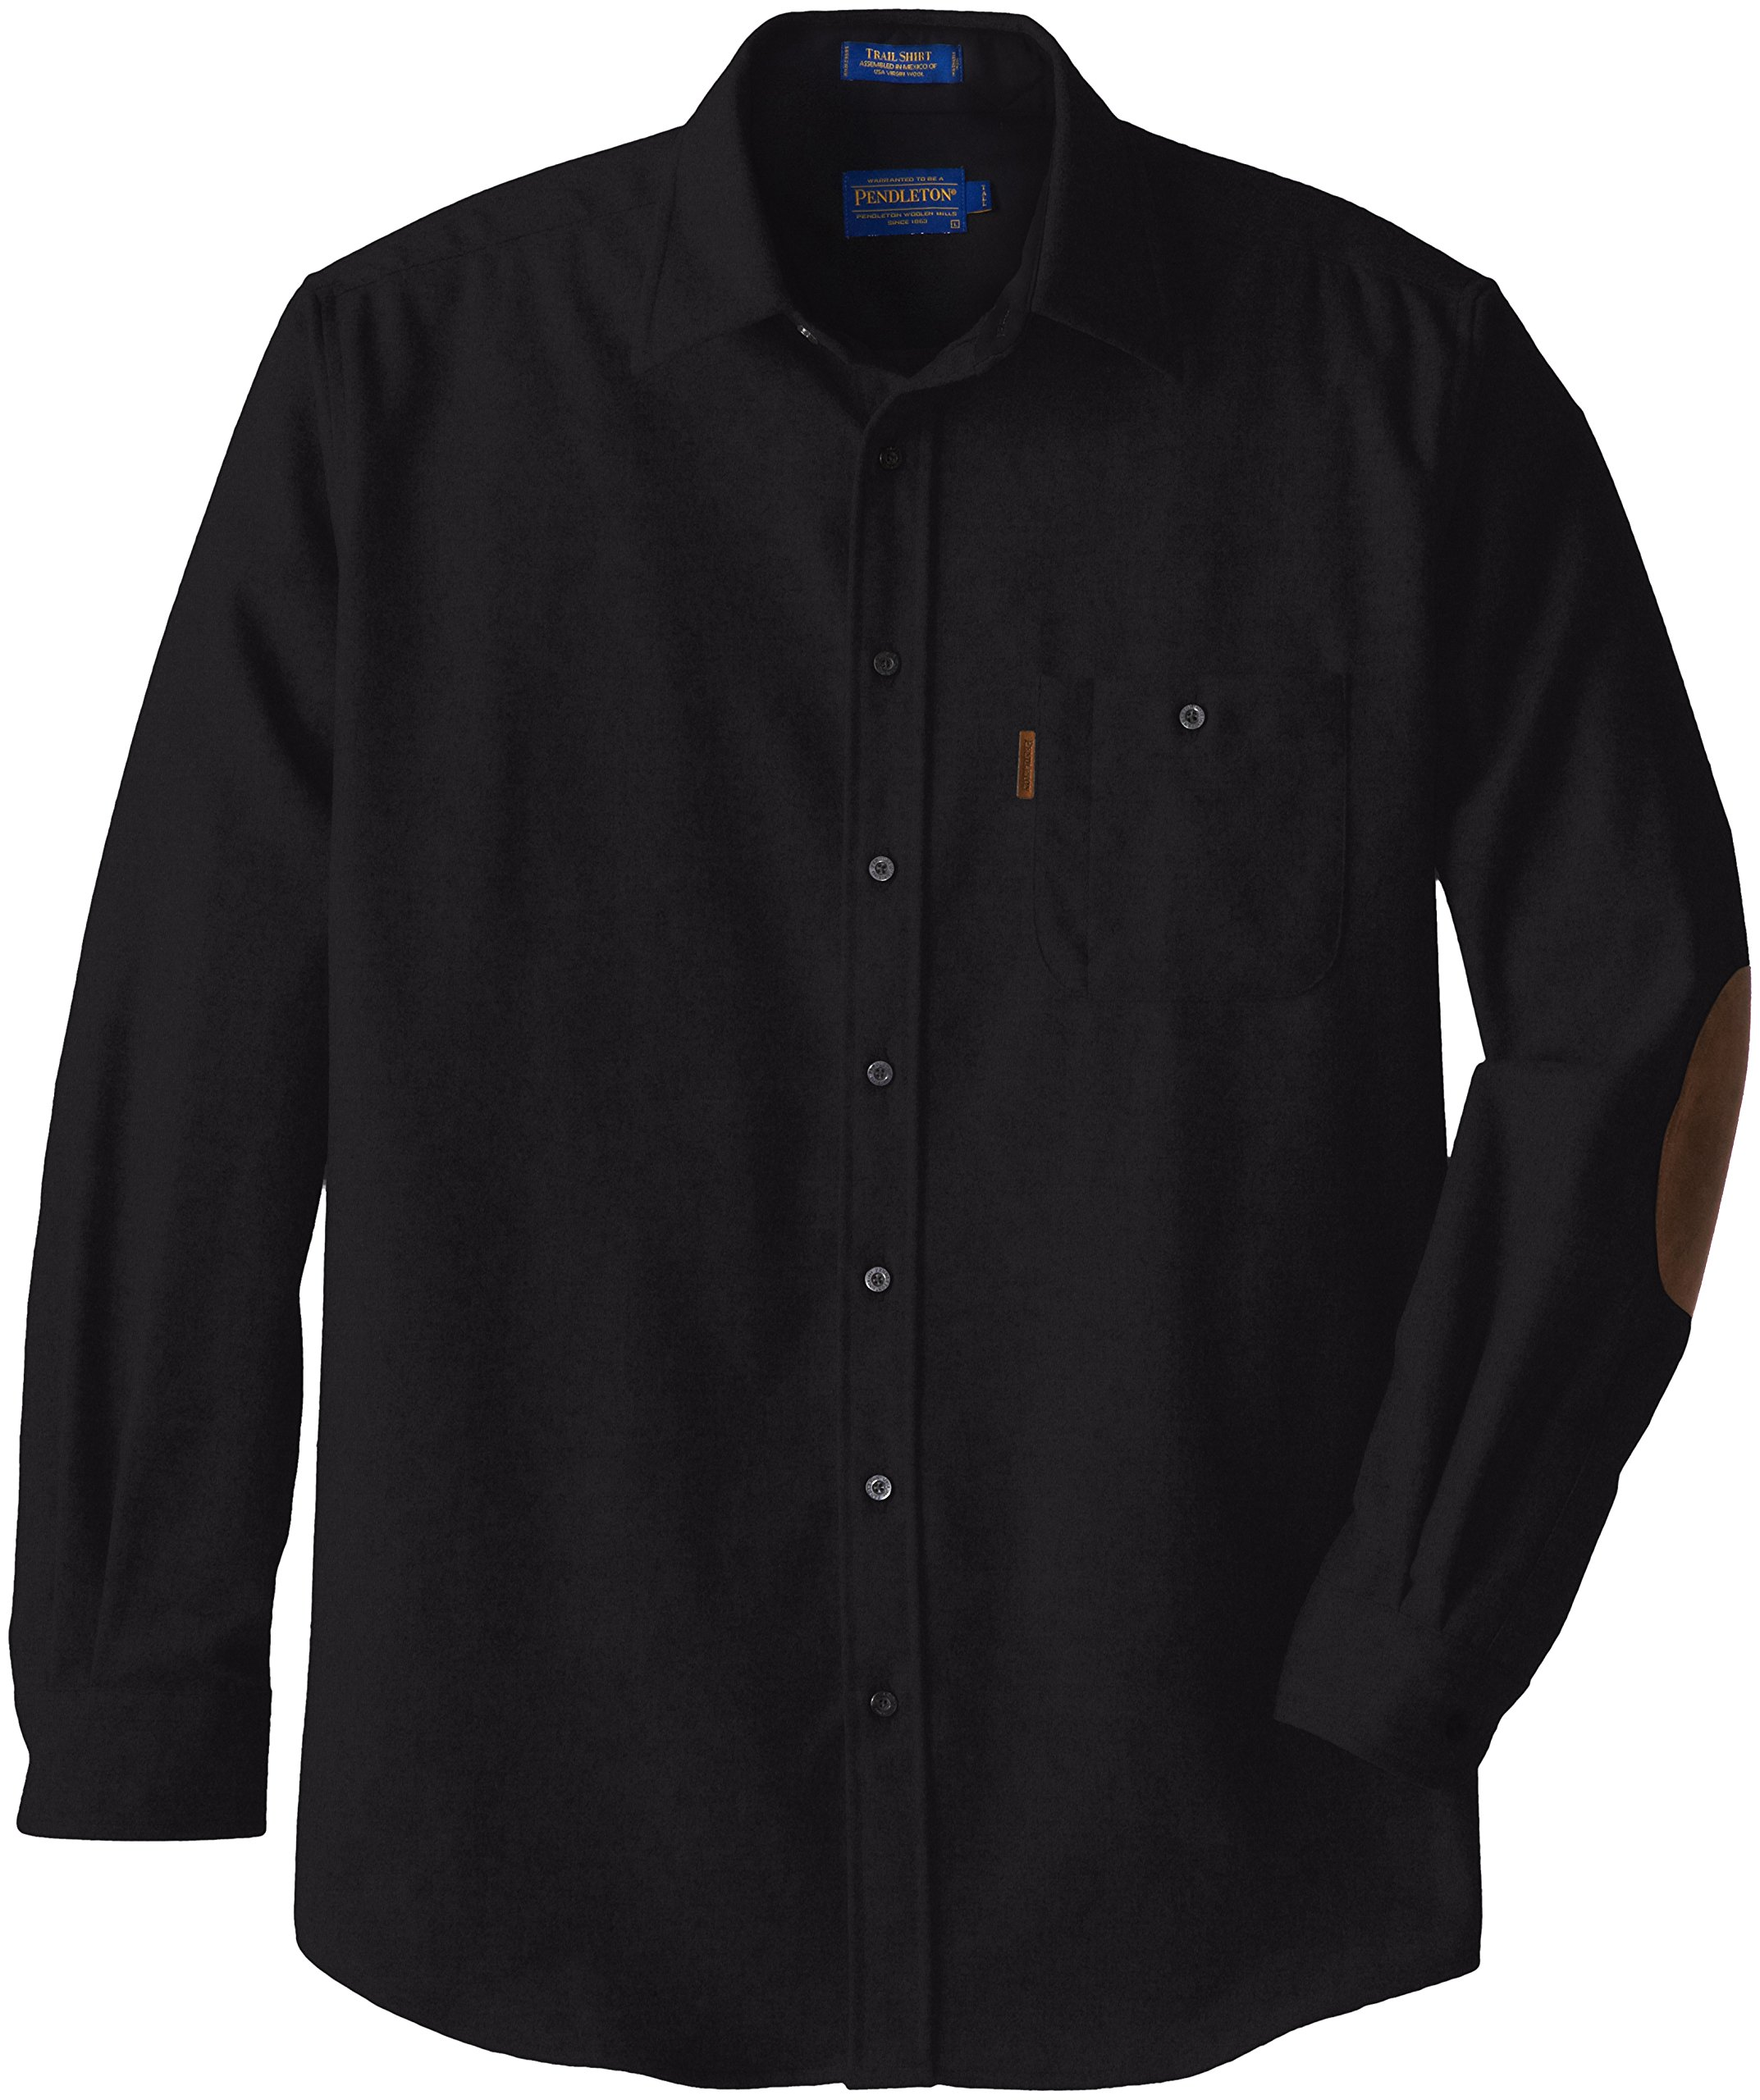 Pendleton Men's Big & Tall Long Sleeve Trail Shirt, Black, XX-Large/Tall